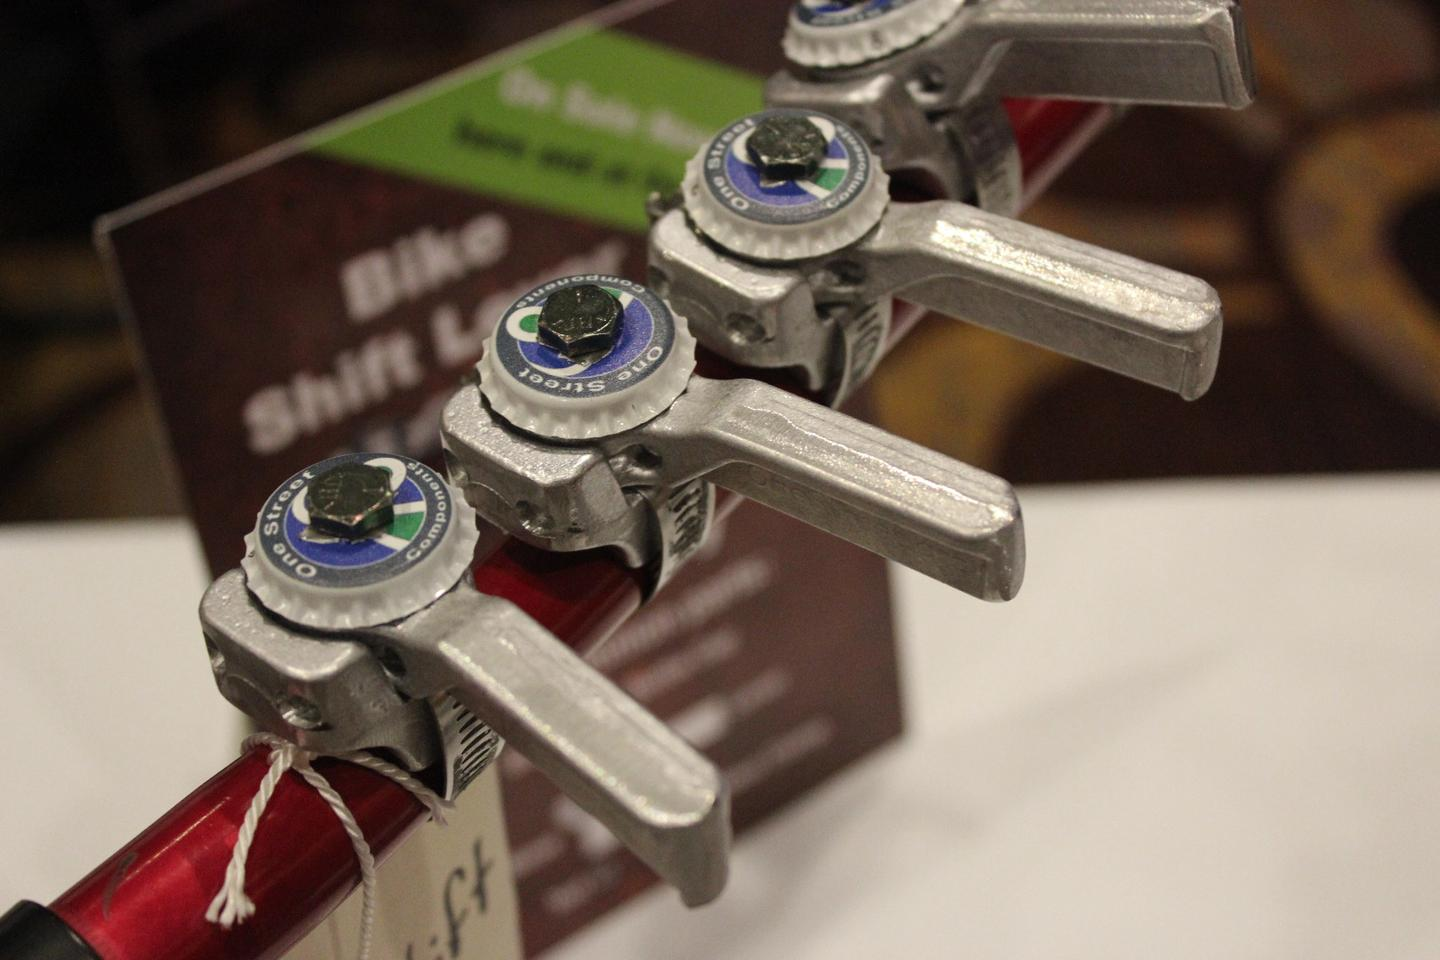 These low-cost shifters are made from bottle caps and melted scrap aluminum, using a package created by bicycle advocacy nonprofit One Street Components